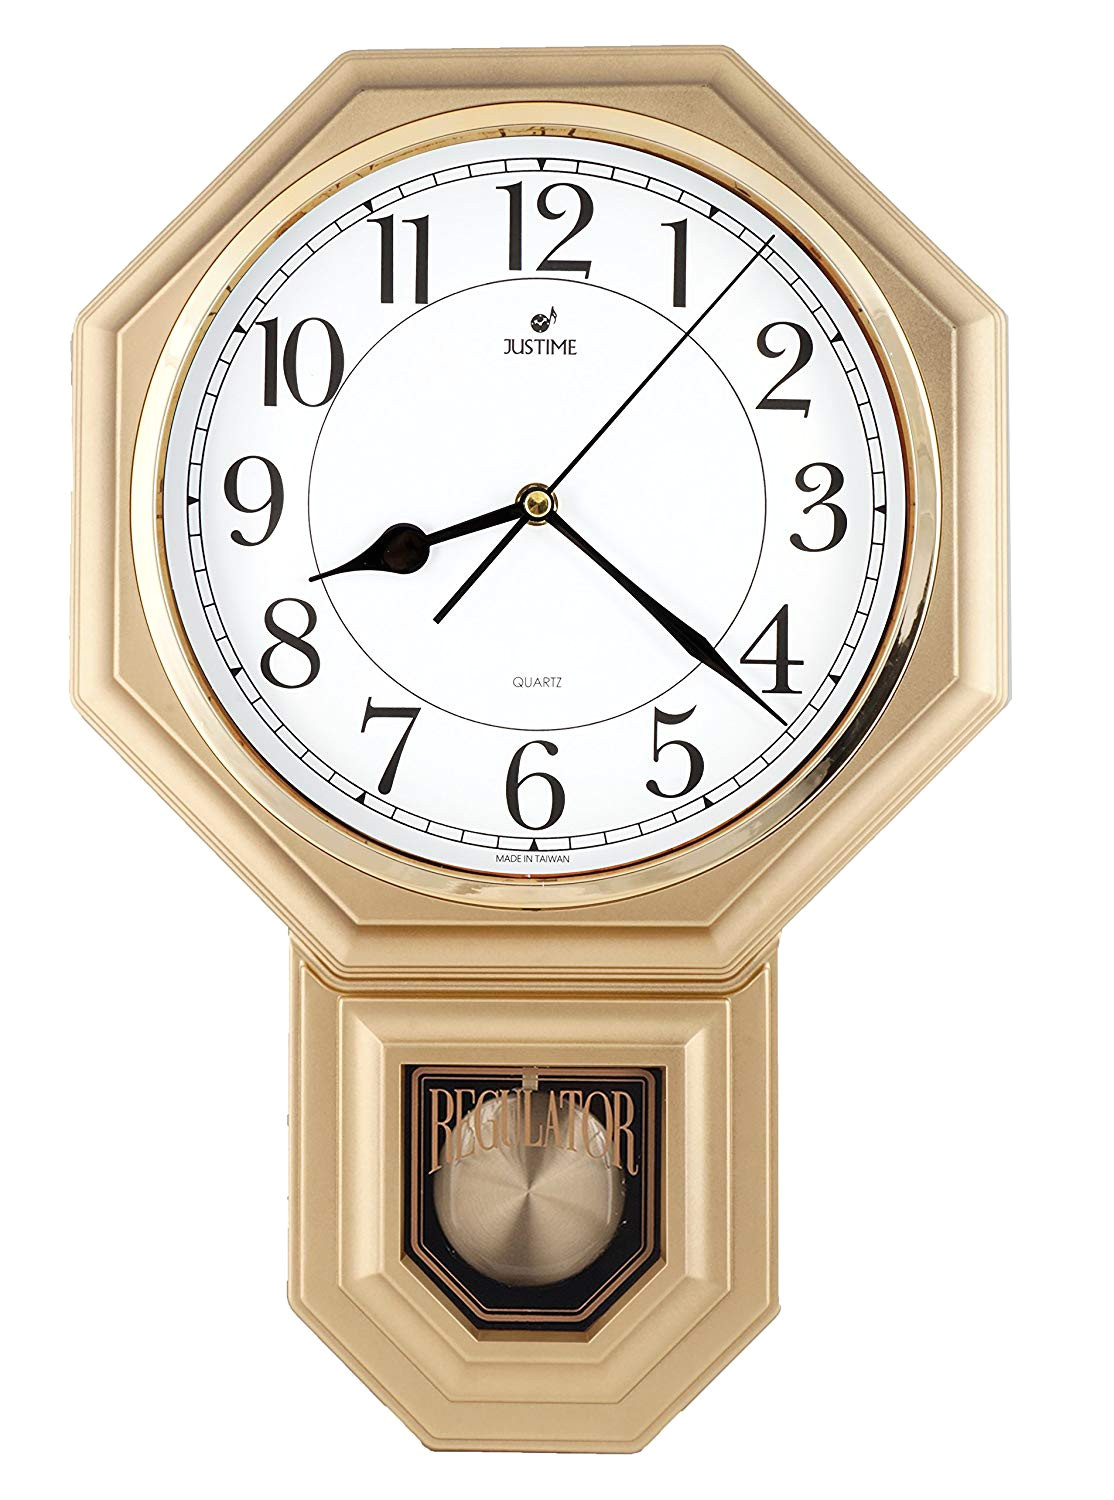 amazon com traditional schoolhouse easy to read pendulum wall clock chimes every hour with westminster melody made in taiwan 4aa batteries included